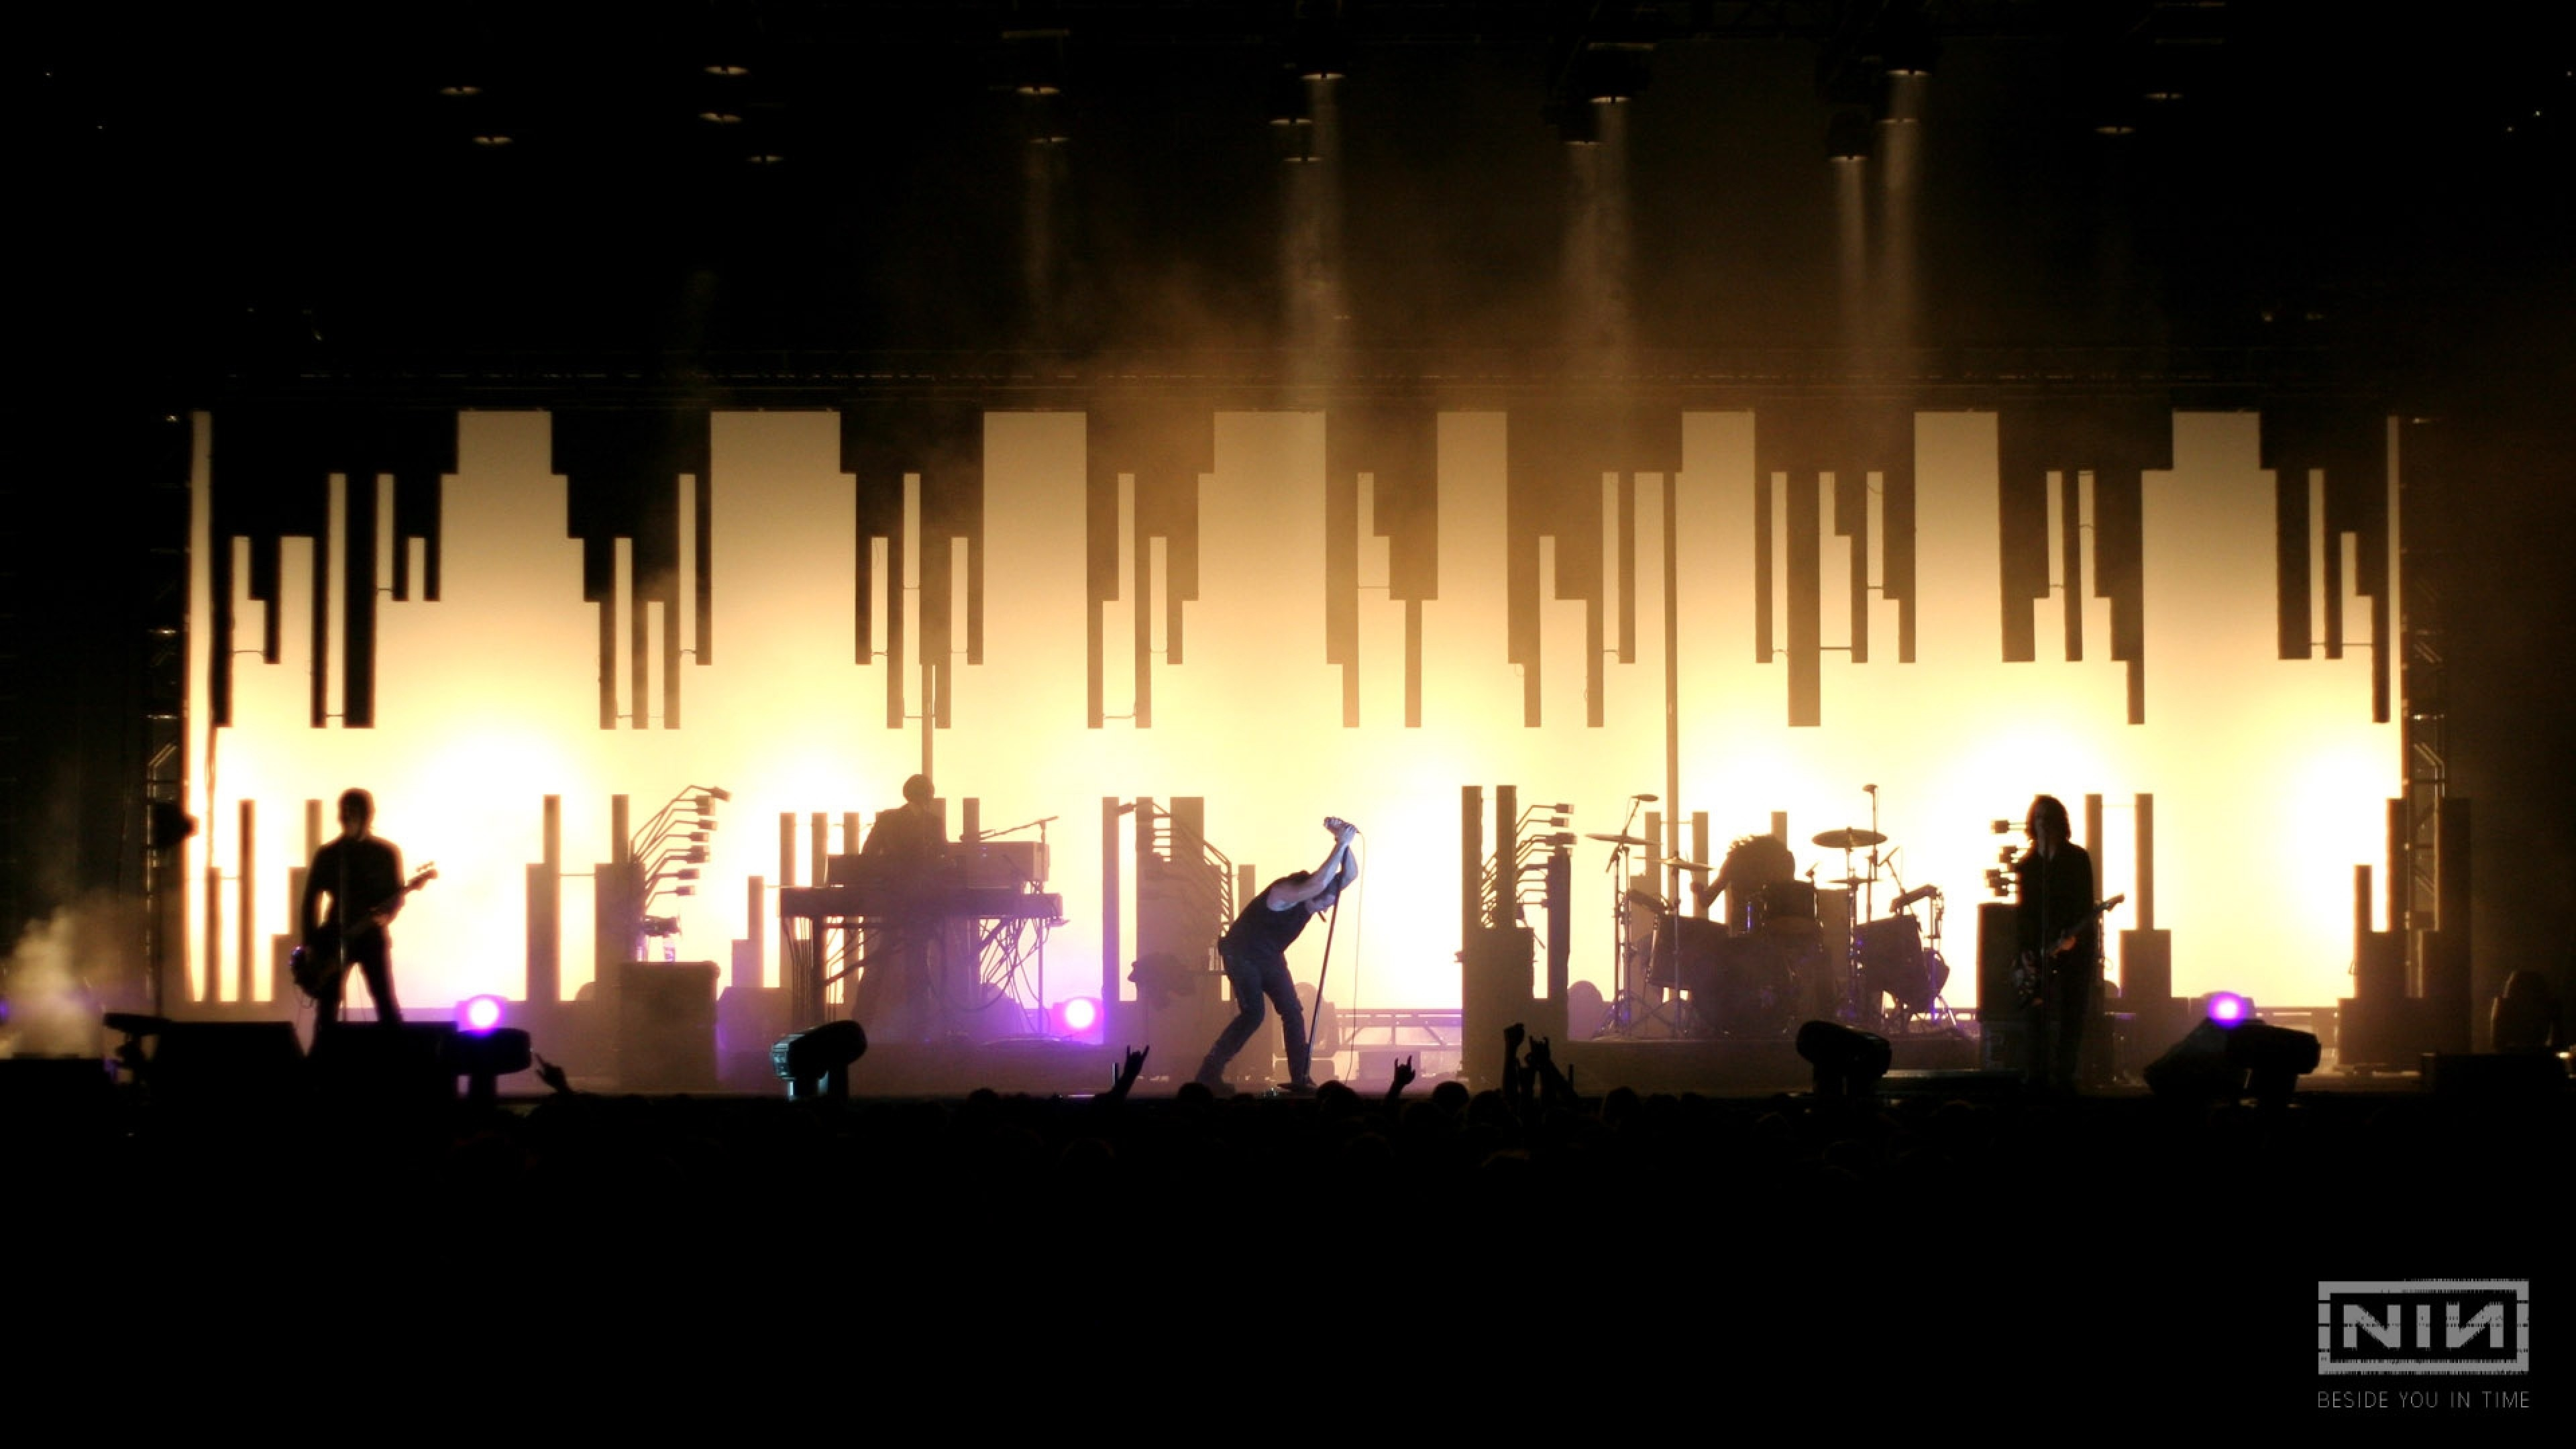 Wallpaper nine inch nails, show, concert, members, silhouette